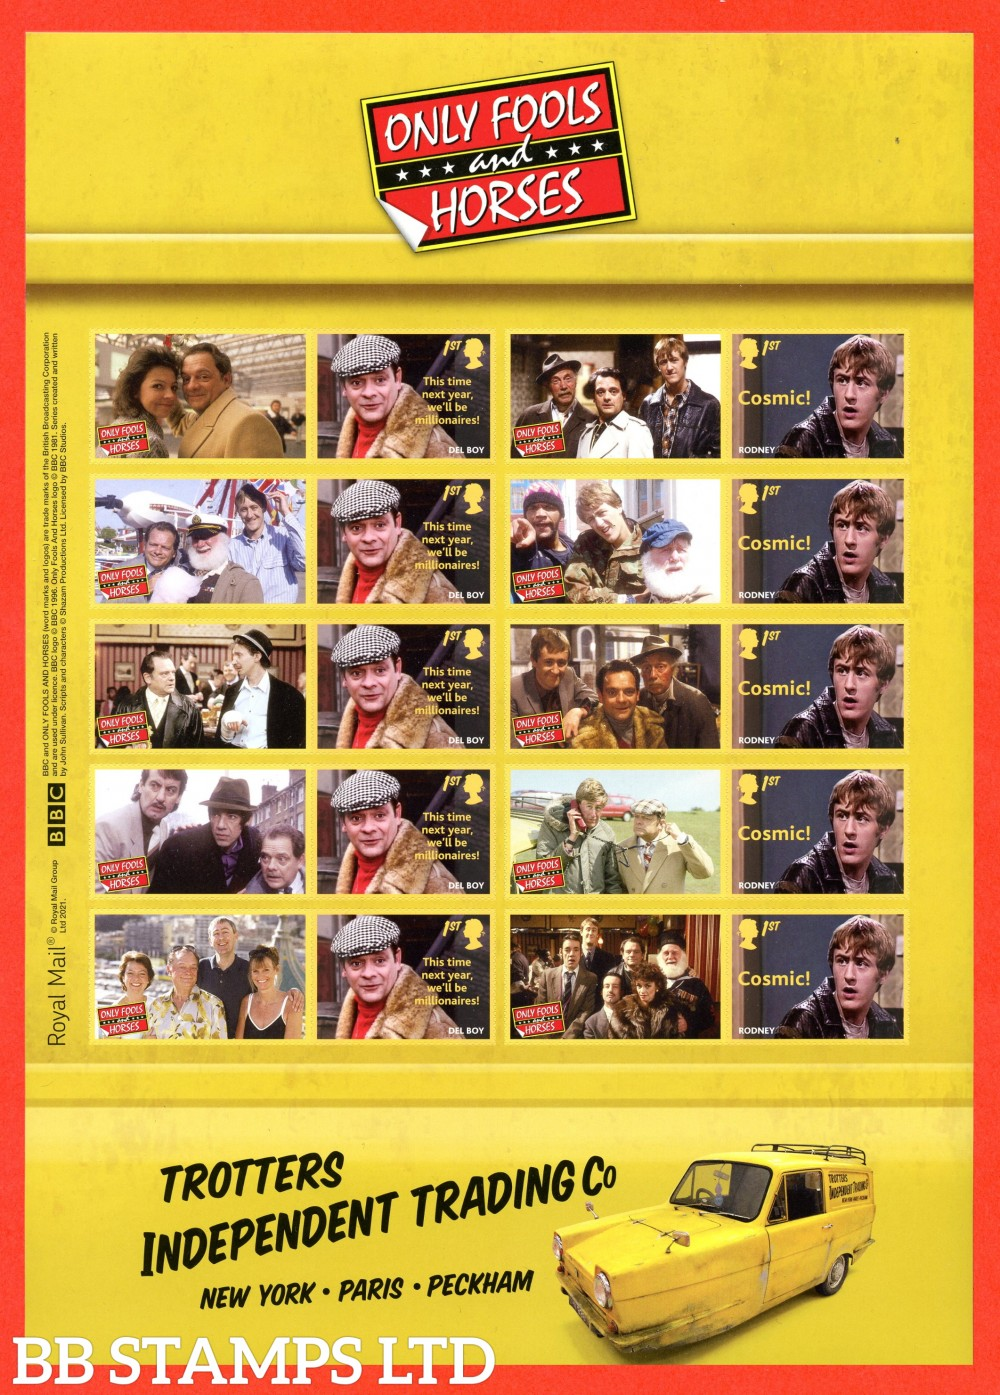 2021 Only Fools and Horses Smiler sheet (16.02.21)